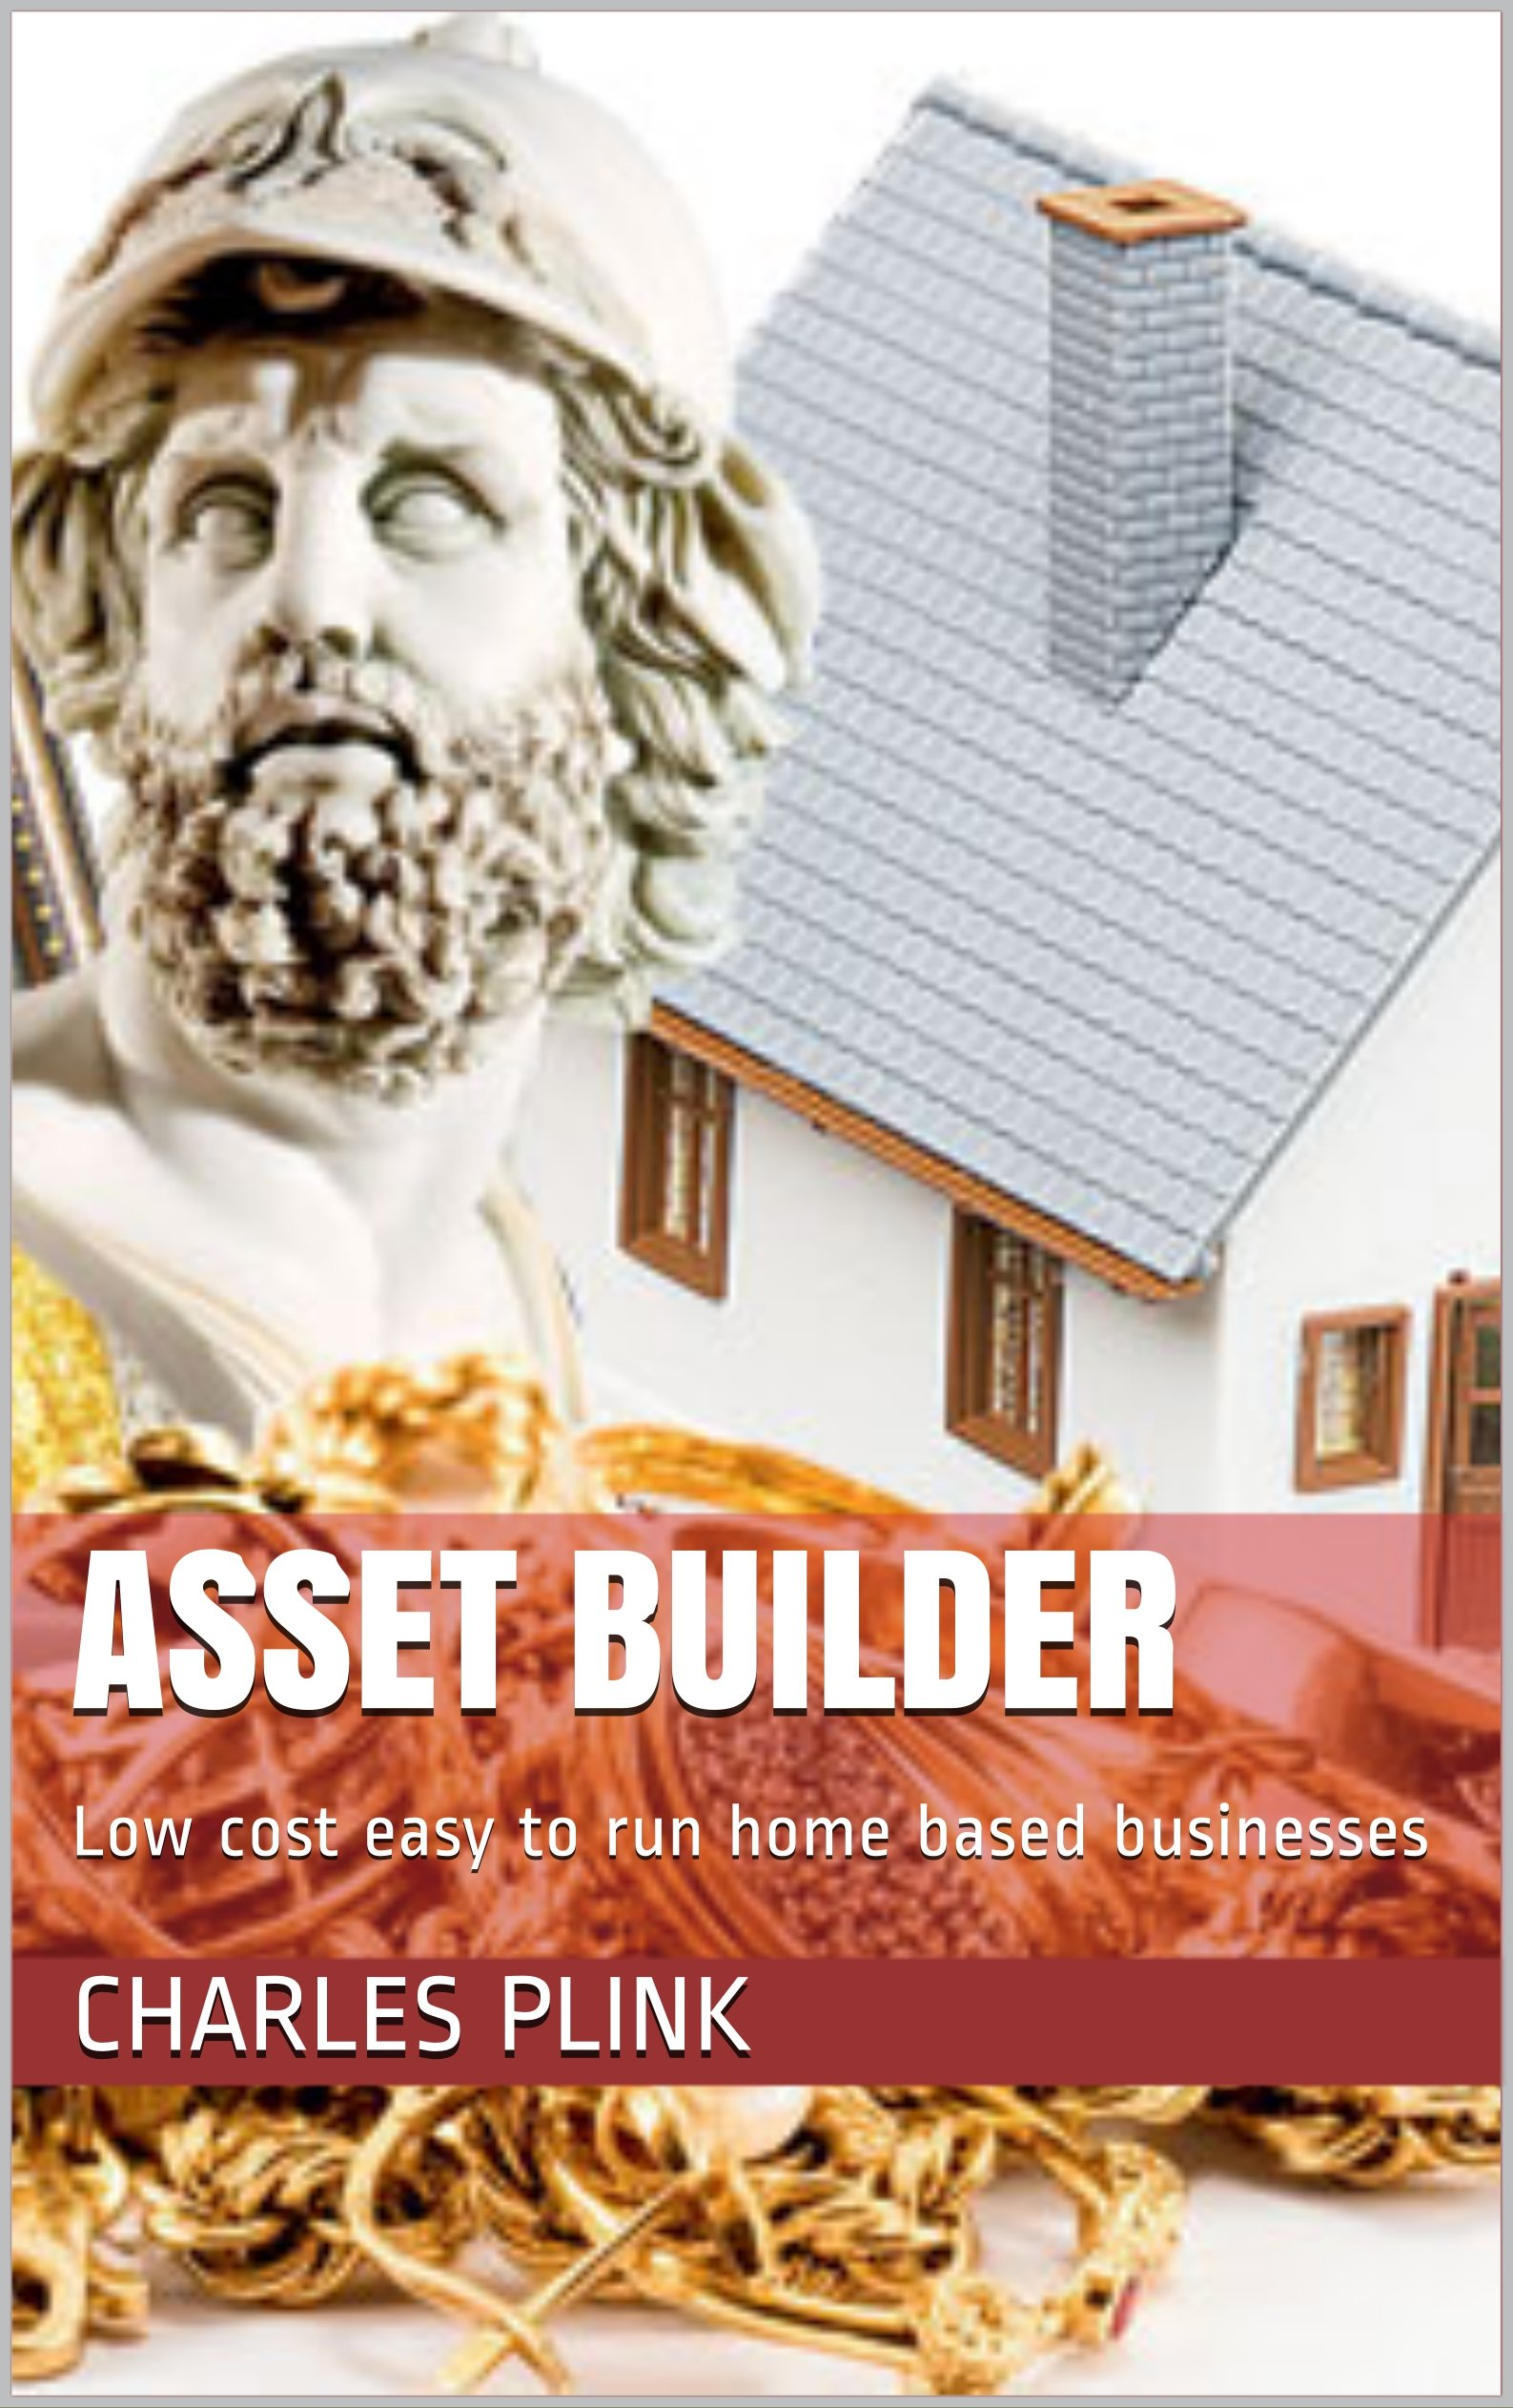 Asset Builder: Low cost easy to run home based businesses